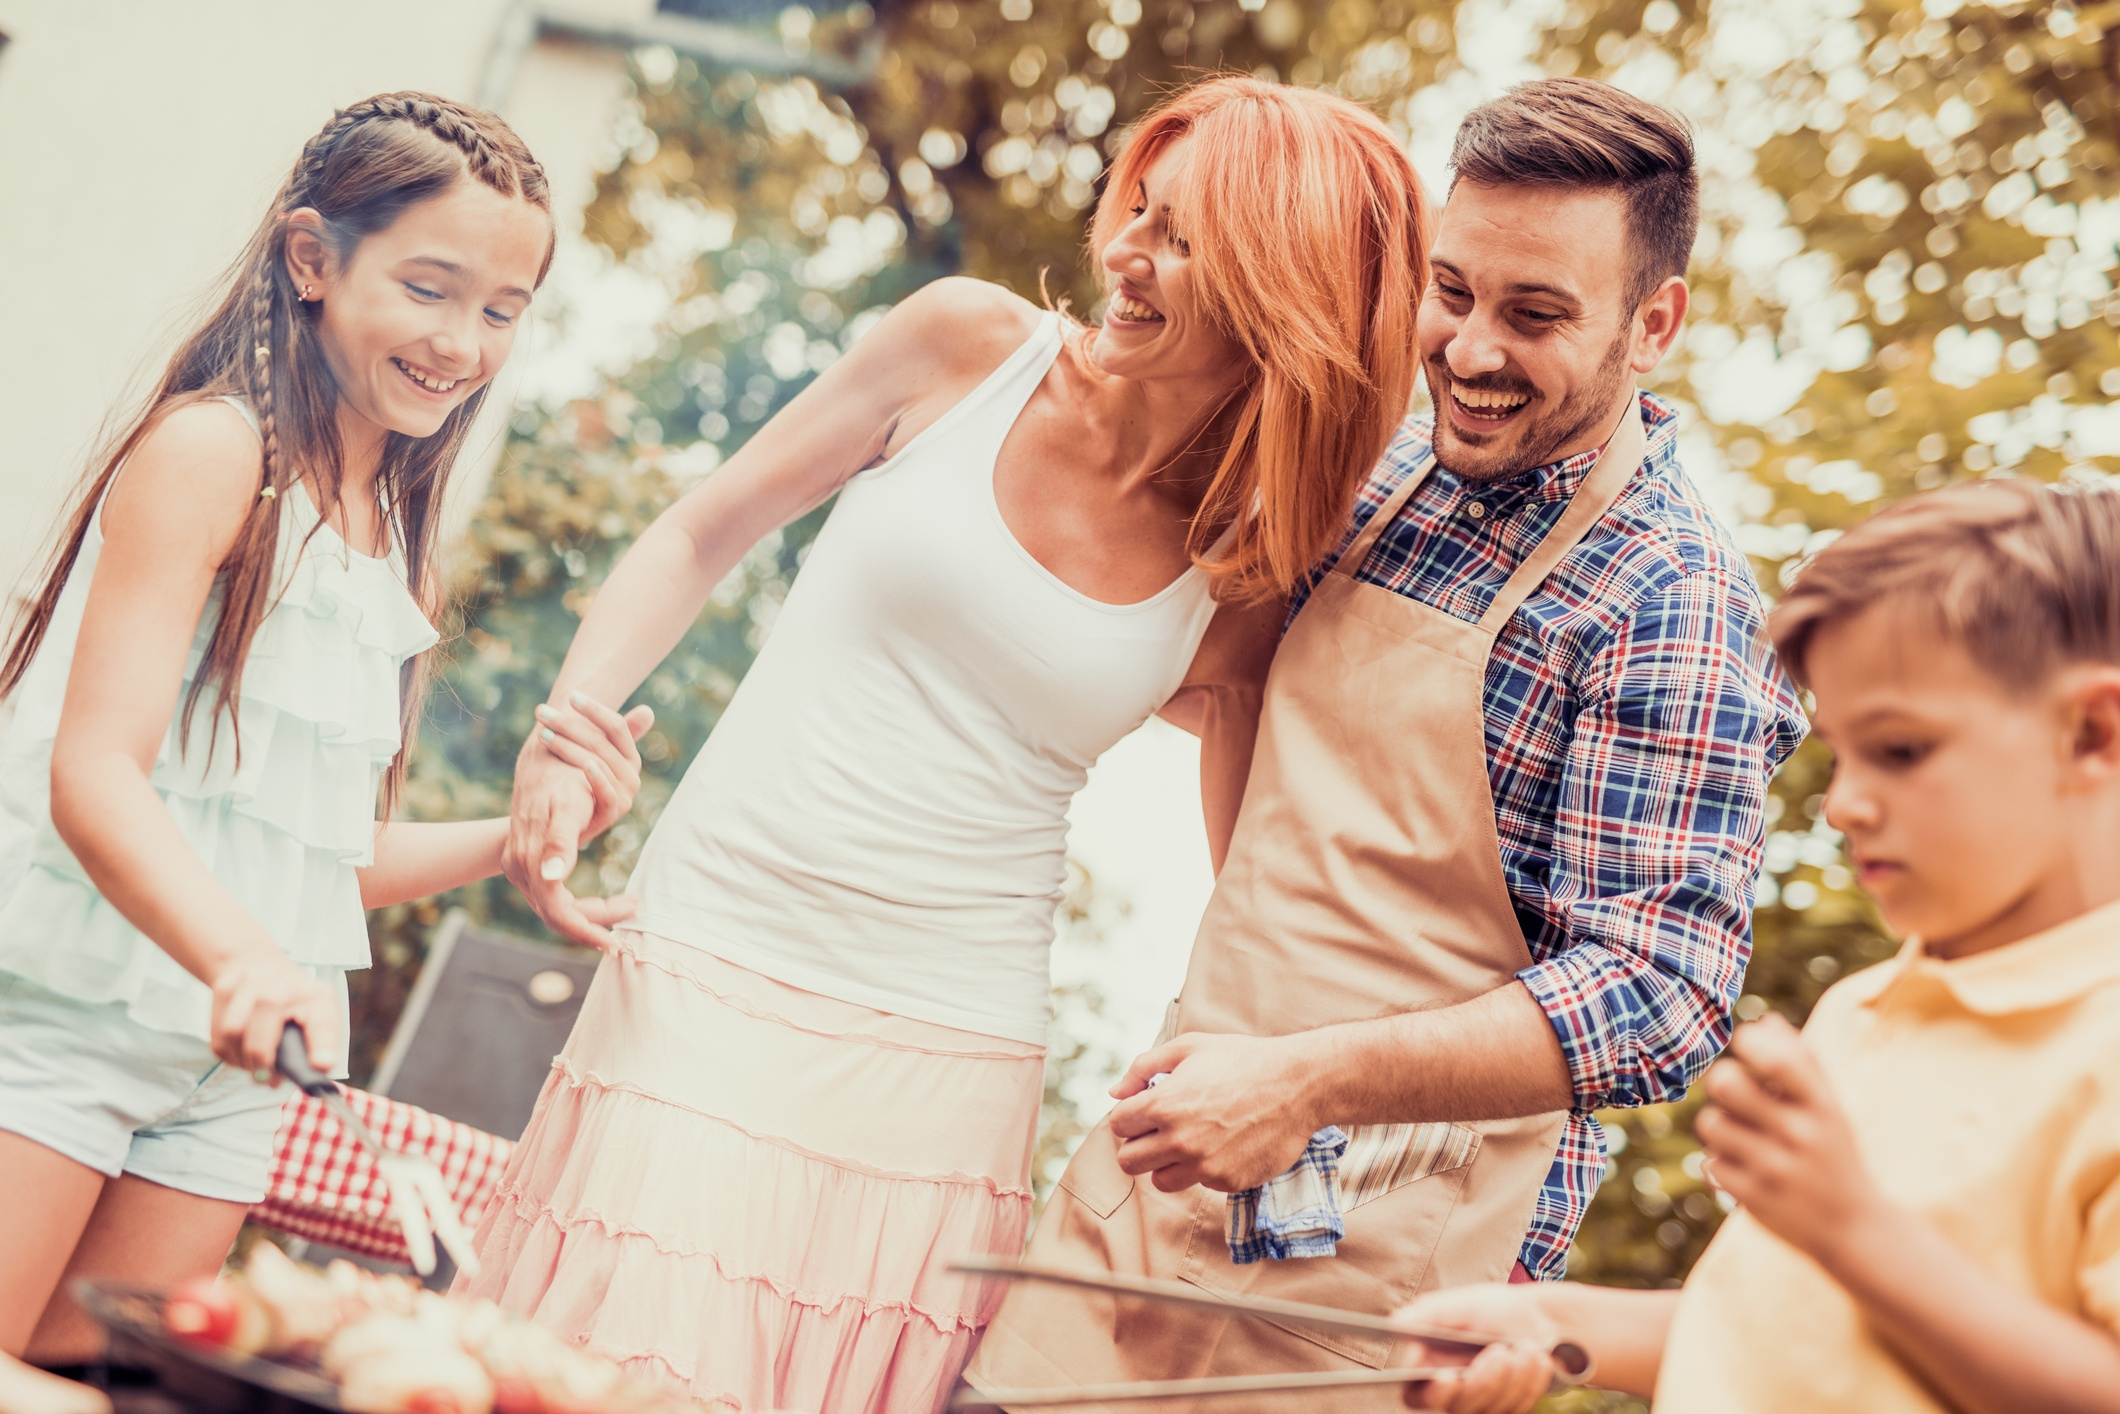 Happy-young-family-barbecuing-meat-on-the-grill-831030944_2122x1416